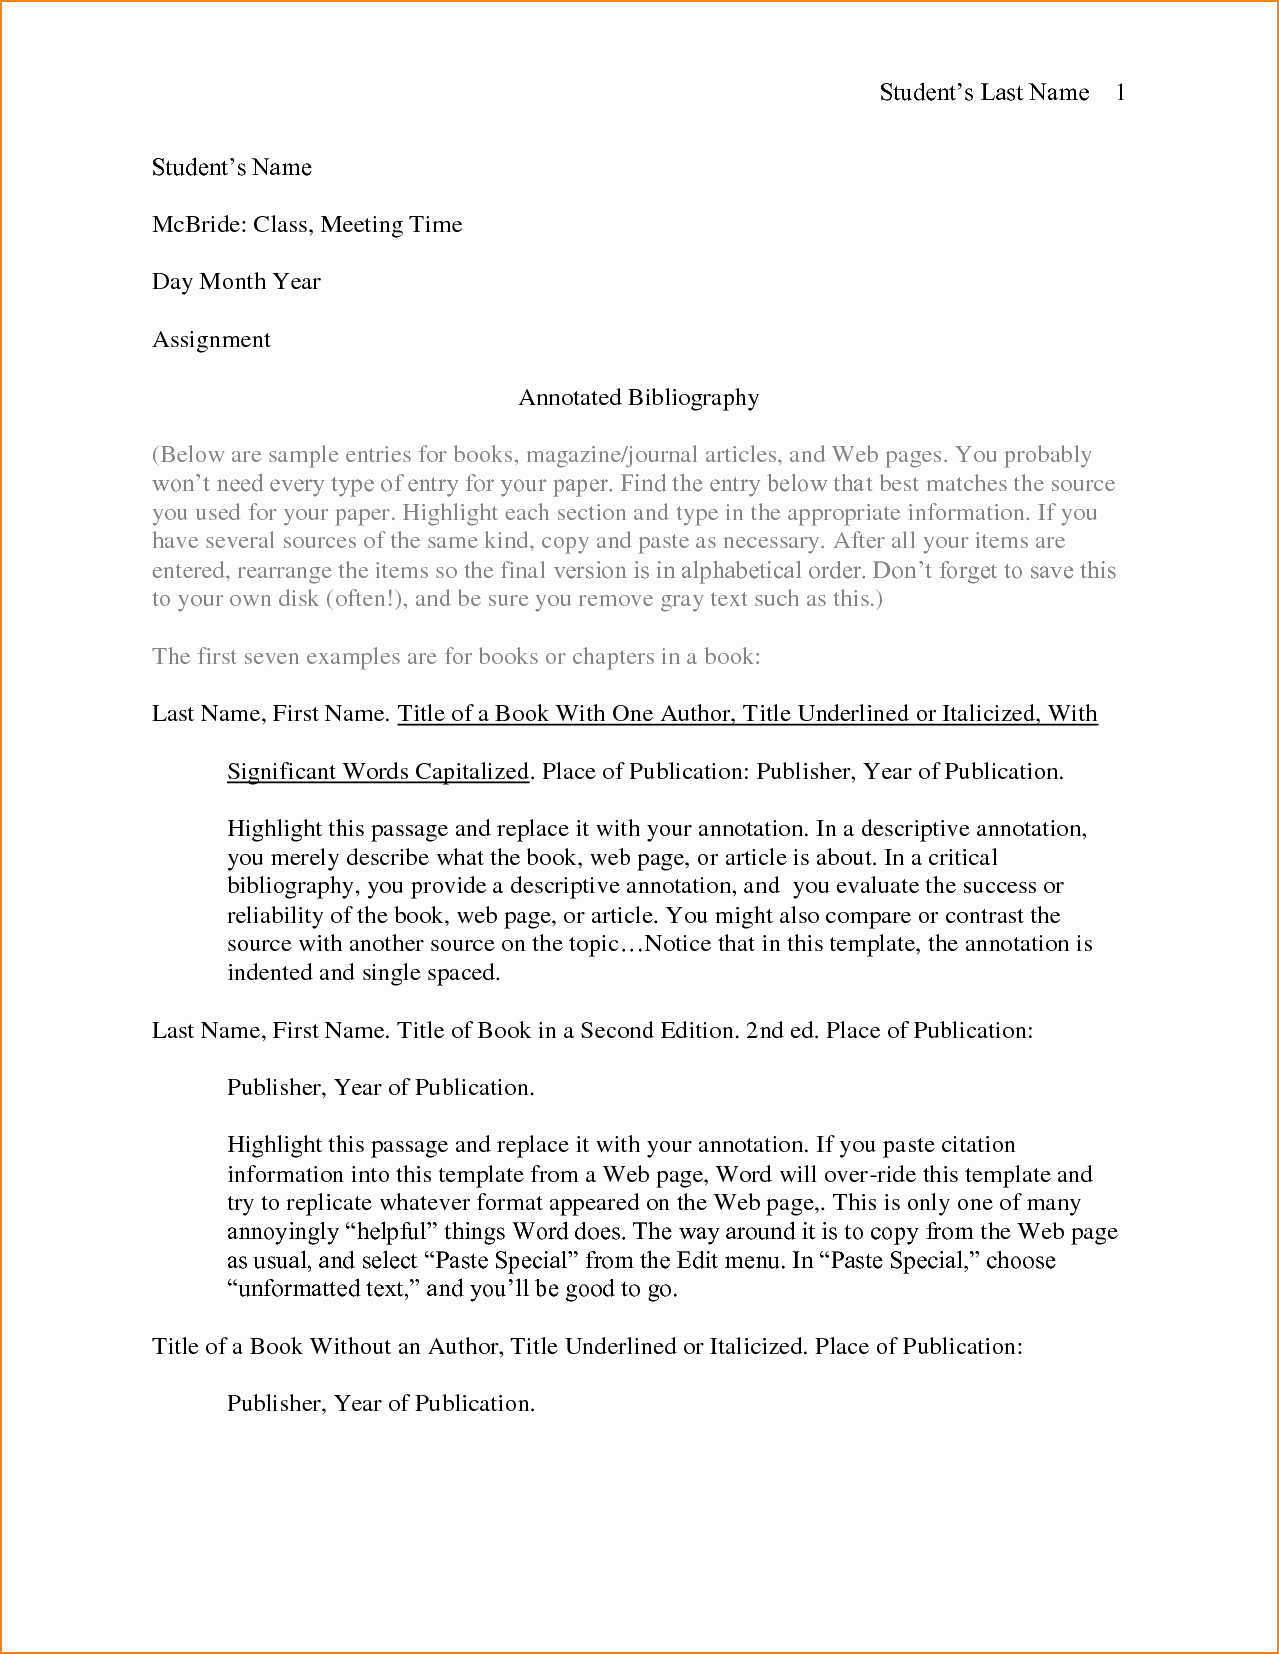 Free Apa format Template Unique Apa Annotated Bibliography Template